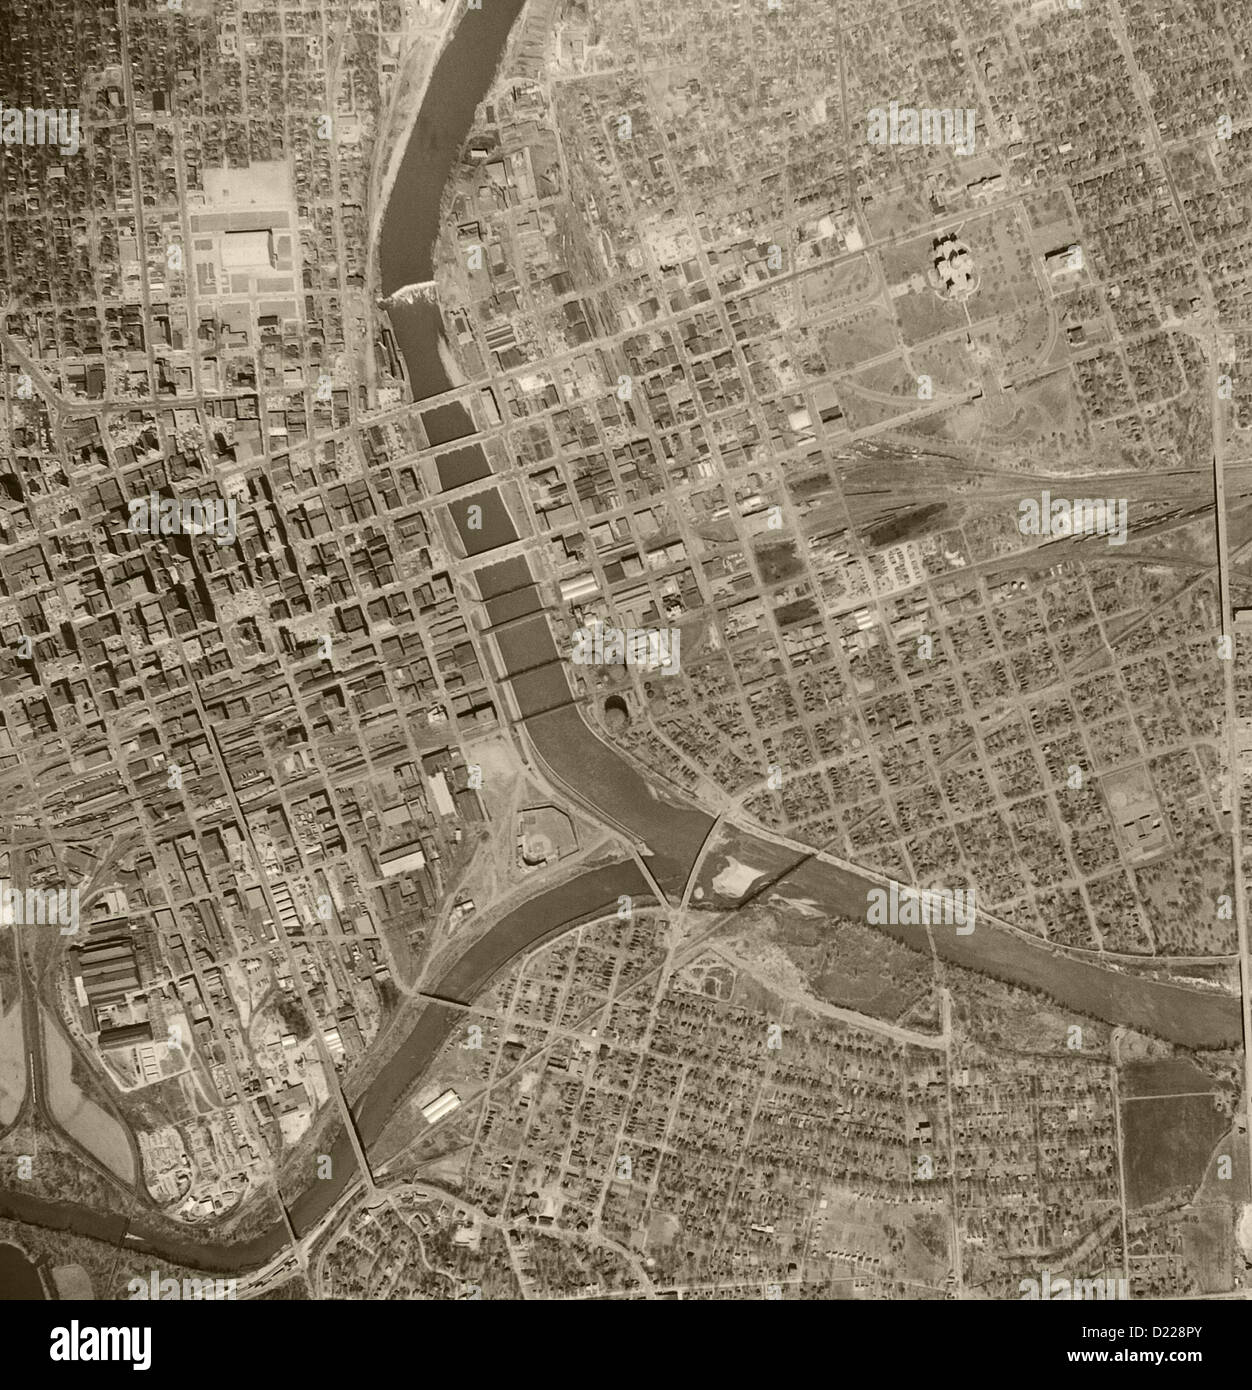 historical aerial photograph Des Moines, Iowa 1956 - Stock Image